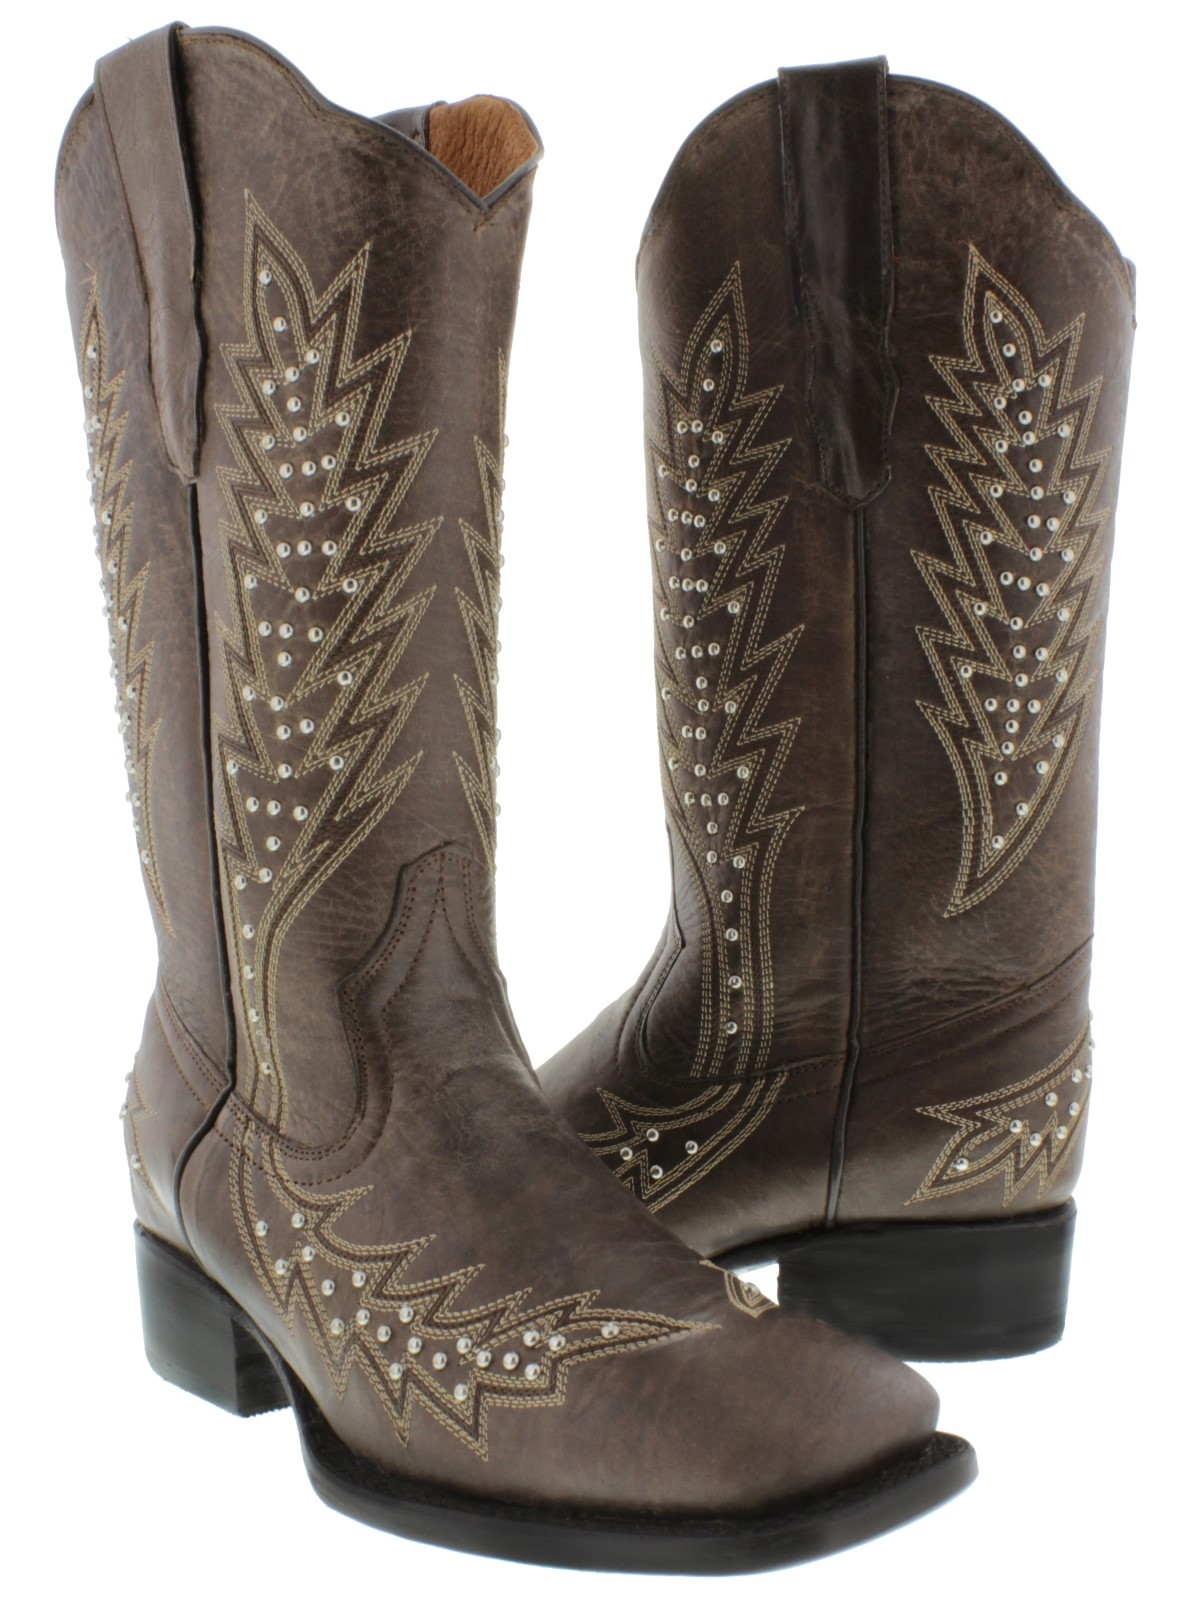 3150ce2cbb0 Details about Womens Brown Studded Cowgirl Boots Silver Genuine Leather  Square Toe